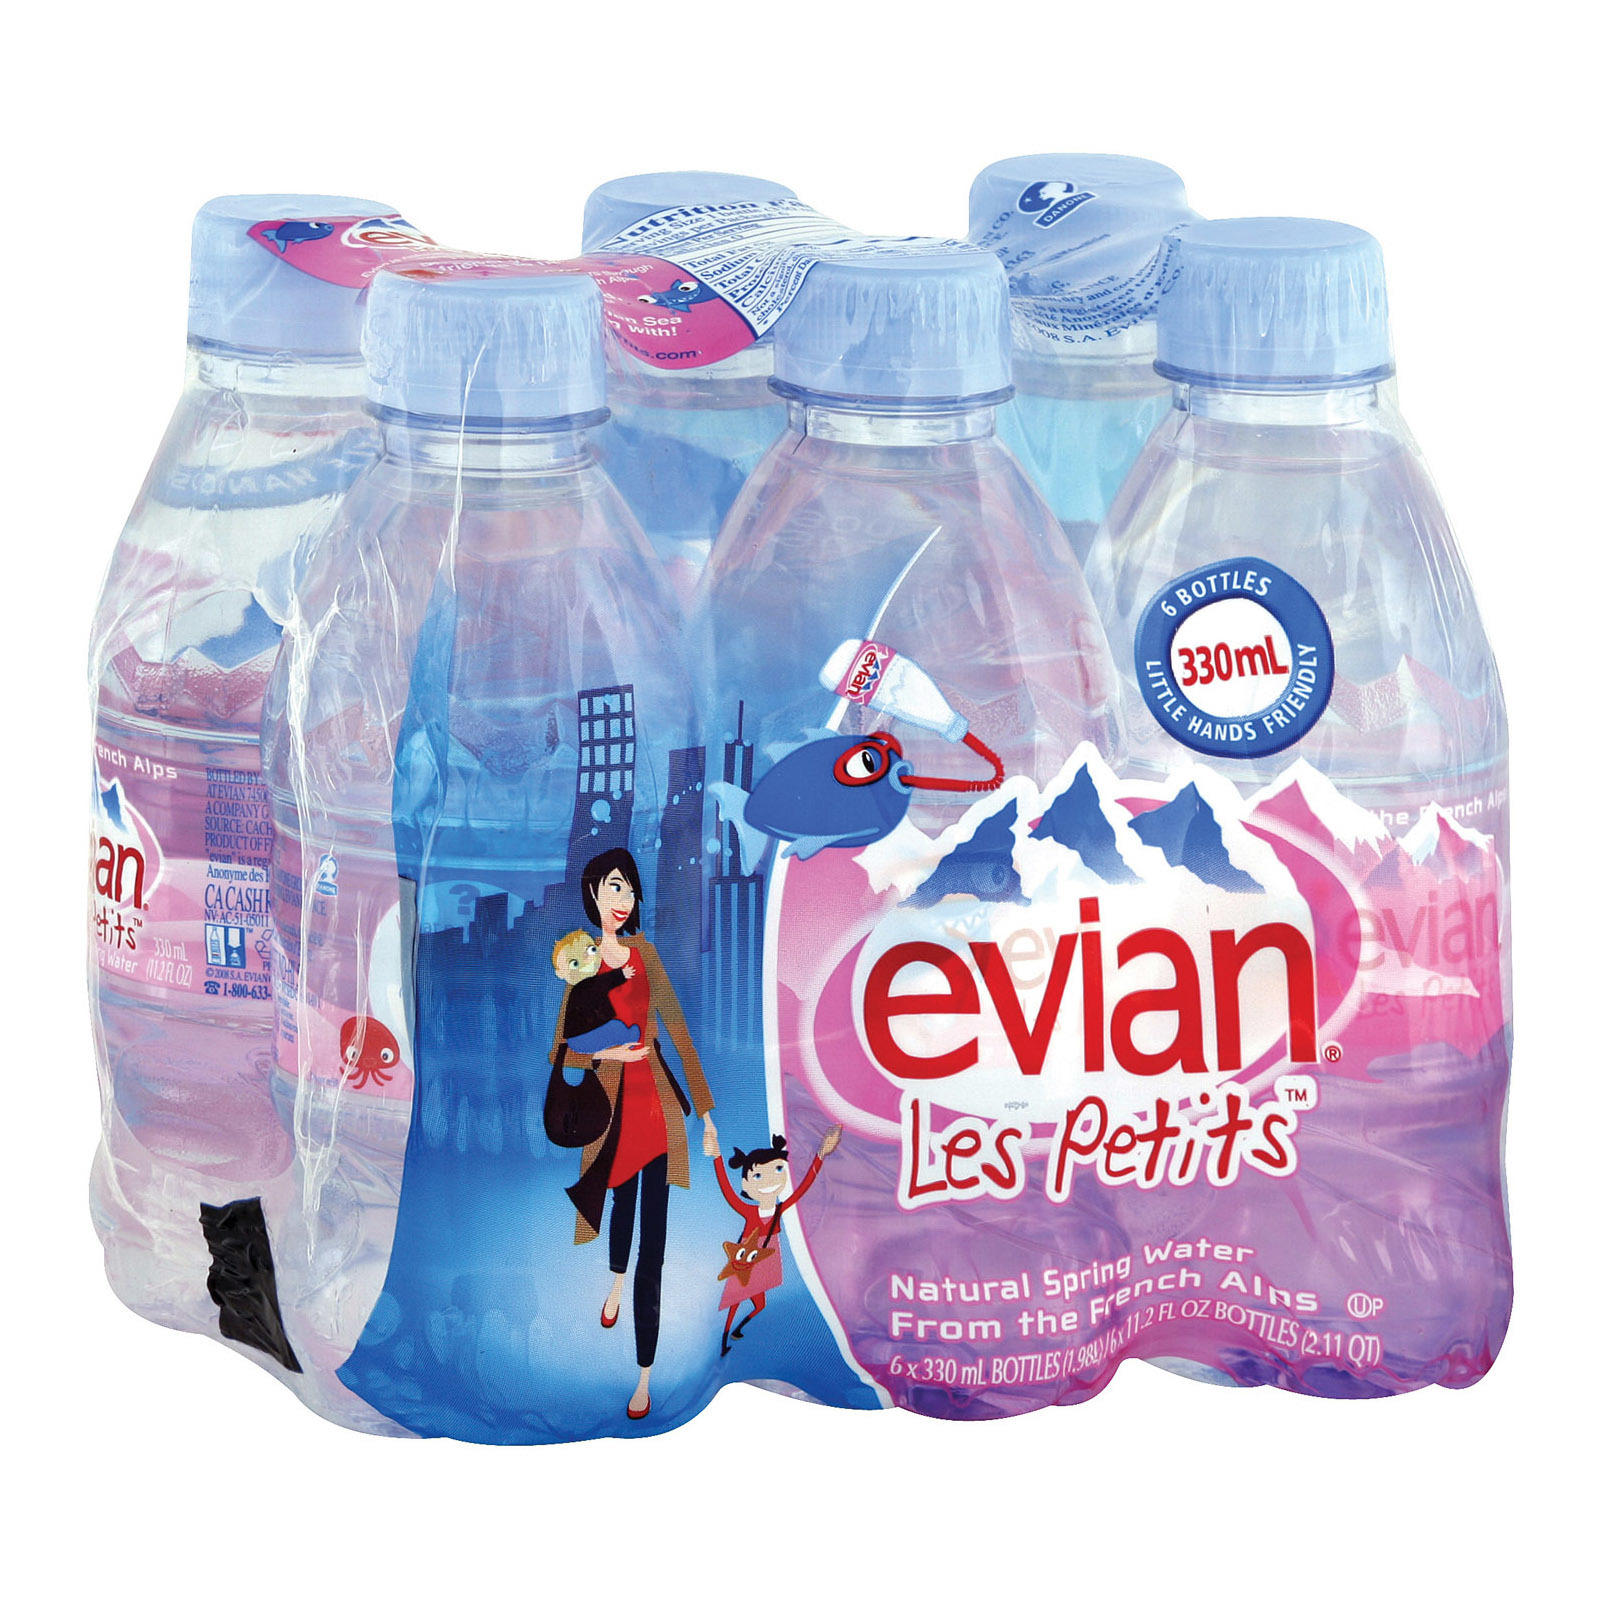 Evians Spring Water Spring Water - Natural - Case of 4 - 6/11.2fl oz